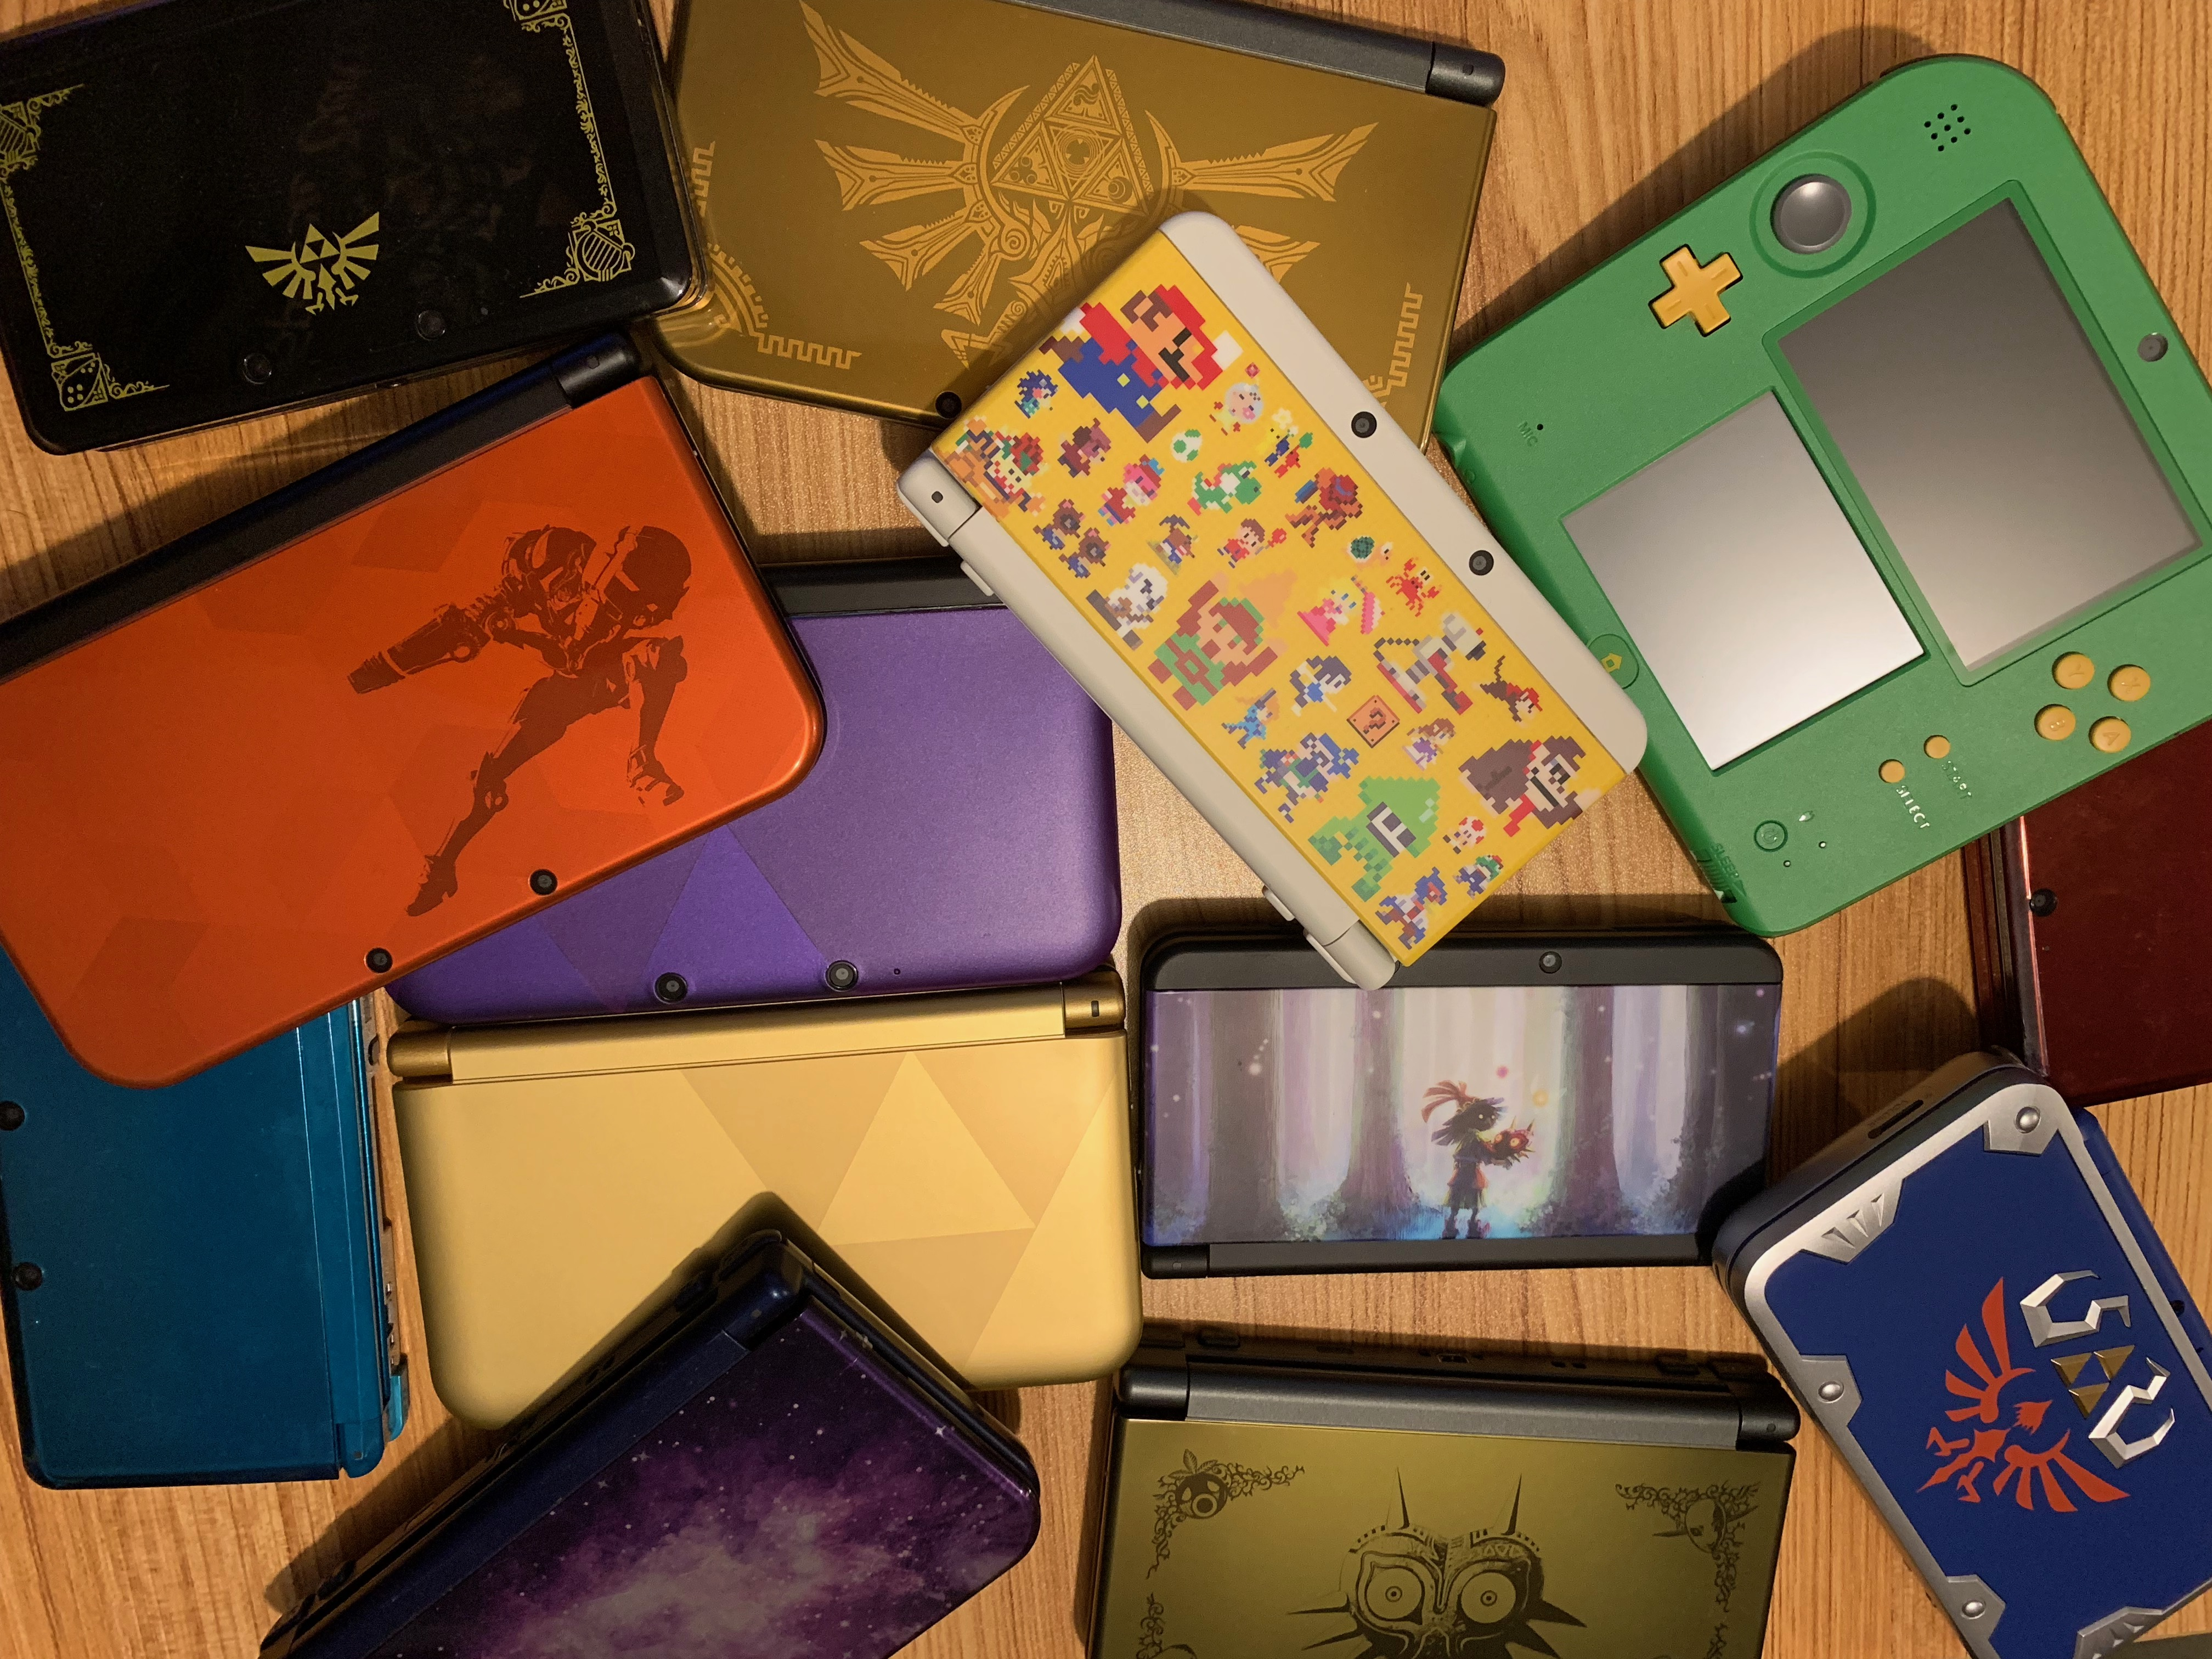 The Many Screens Of The 3DS